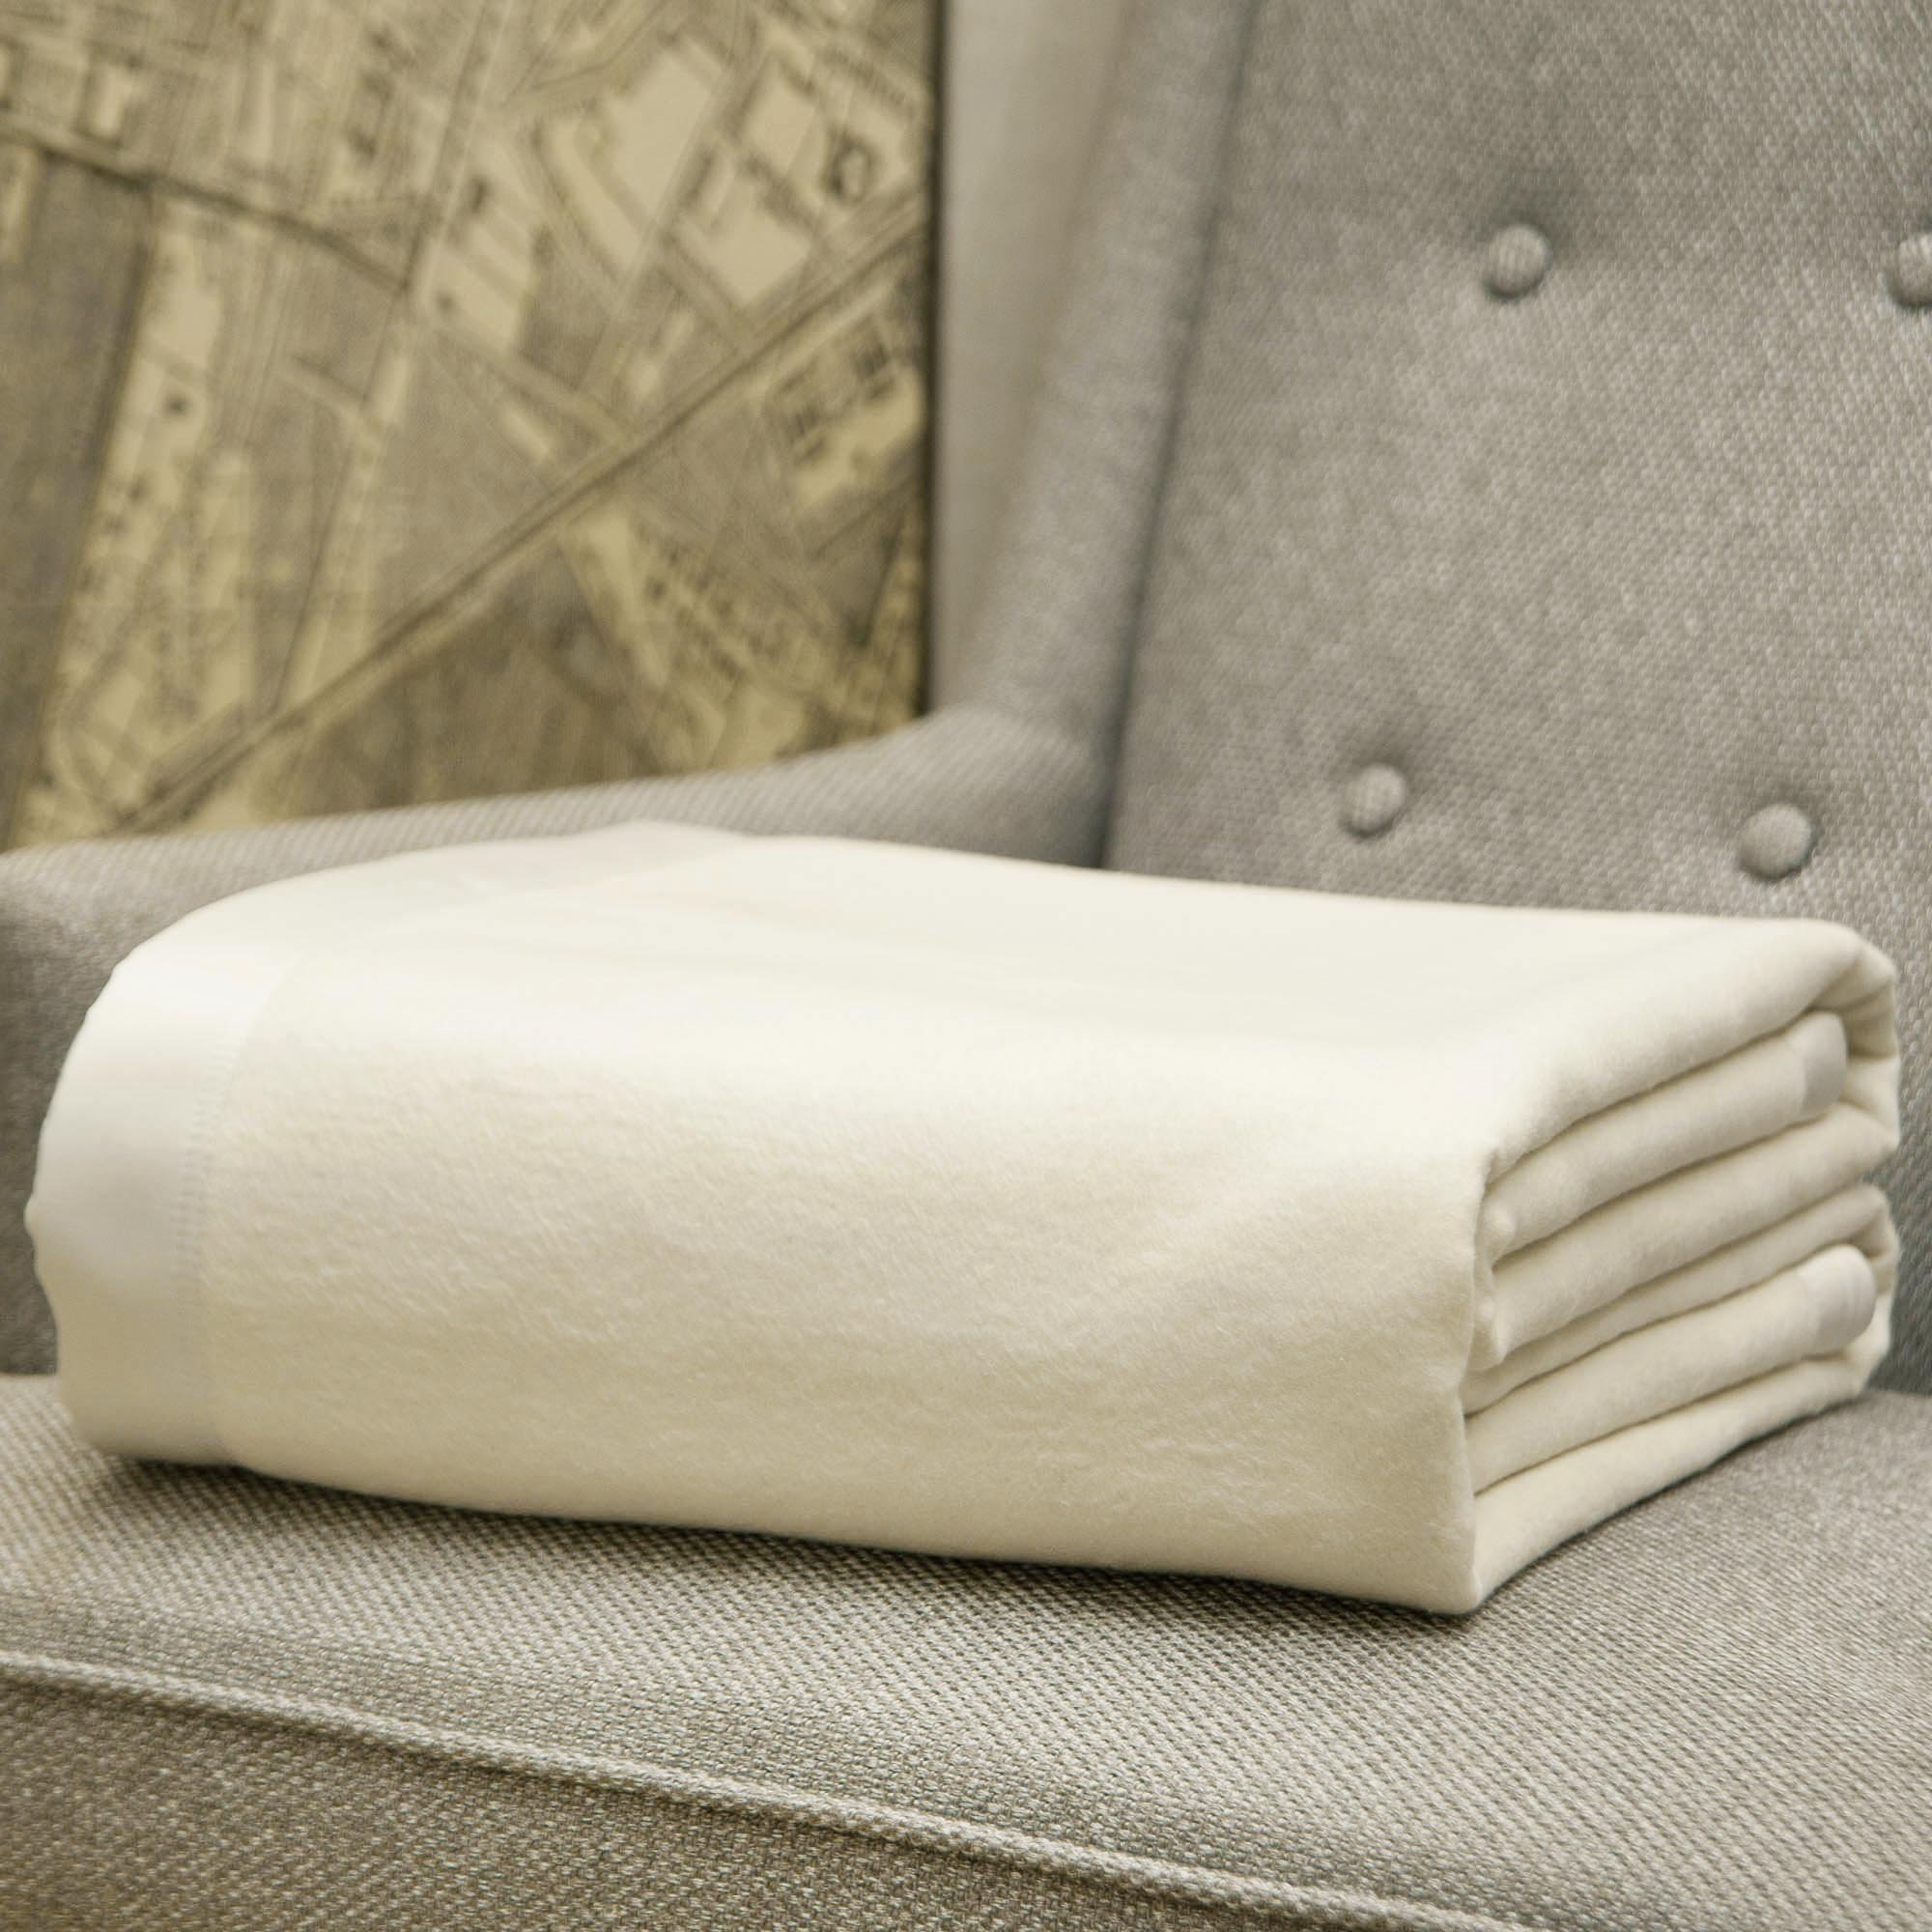 CUDDLE DREAMS Silk Blanket for All Seasons, Premium Long-Strand Mulberry Silk, Naturally Soft (Cream, Full/ Queen 90'' × 90'')